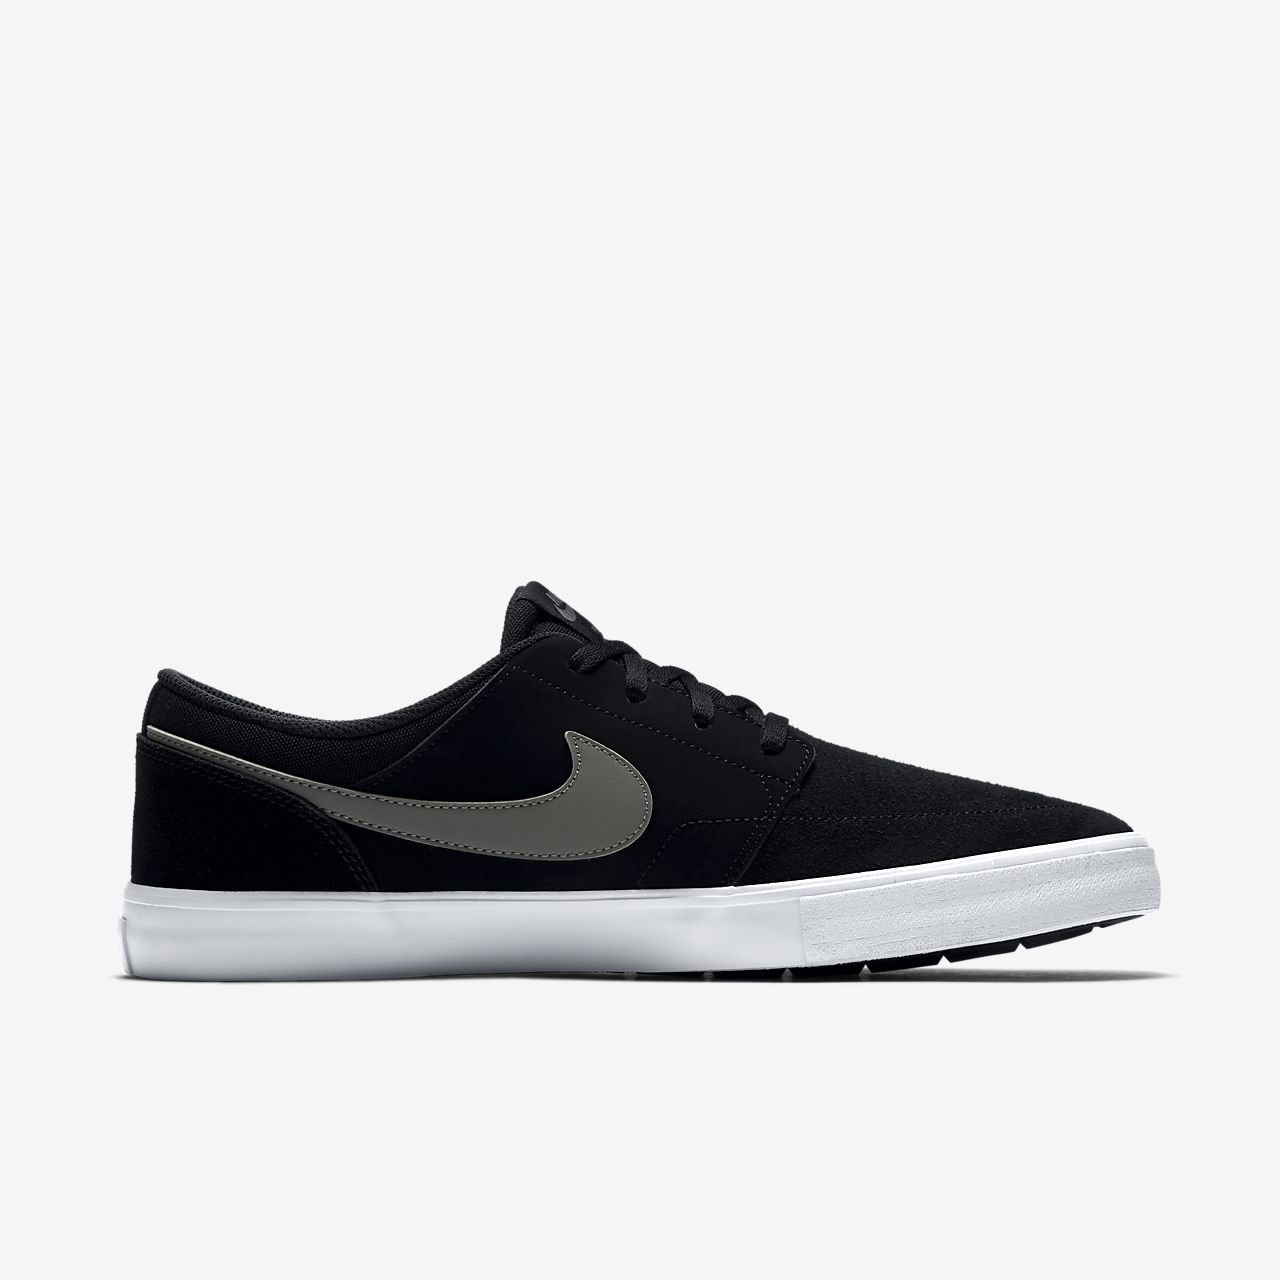 nike sb solarsoft portmore ii men 39 s skateboarding shoe cz. Black Bedroom Furniture Sets. Home Design Ideas